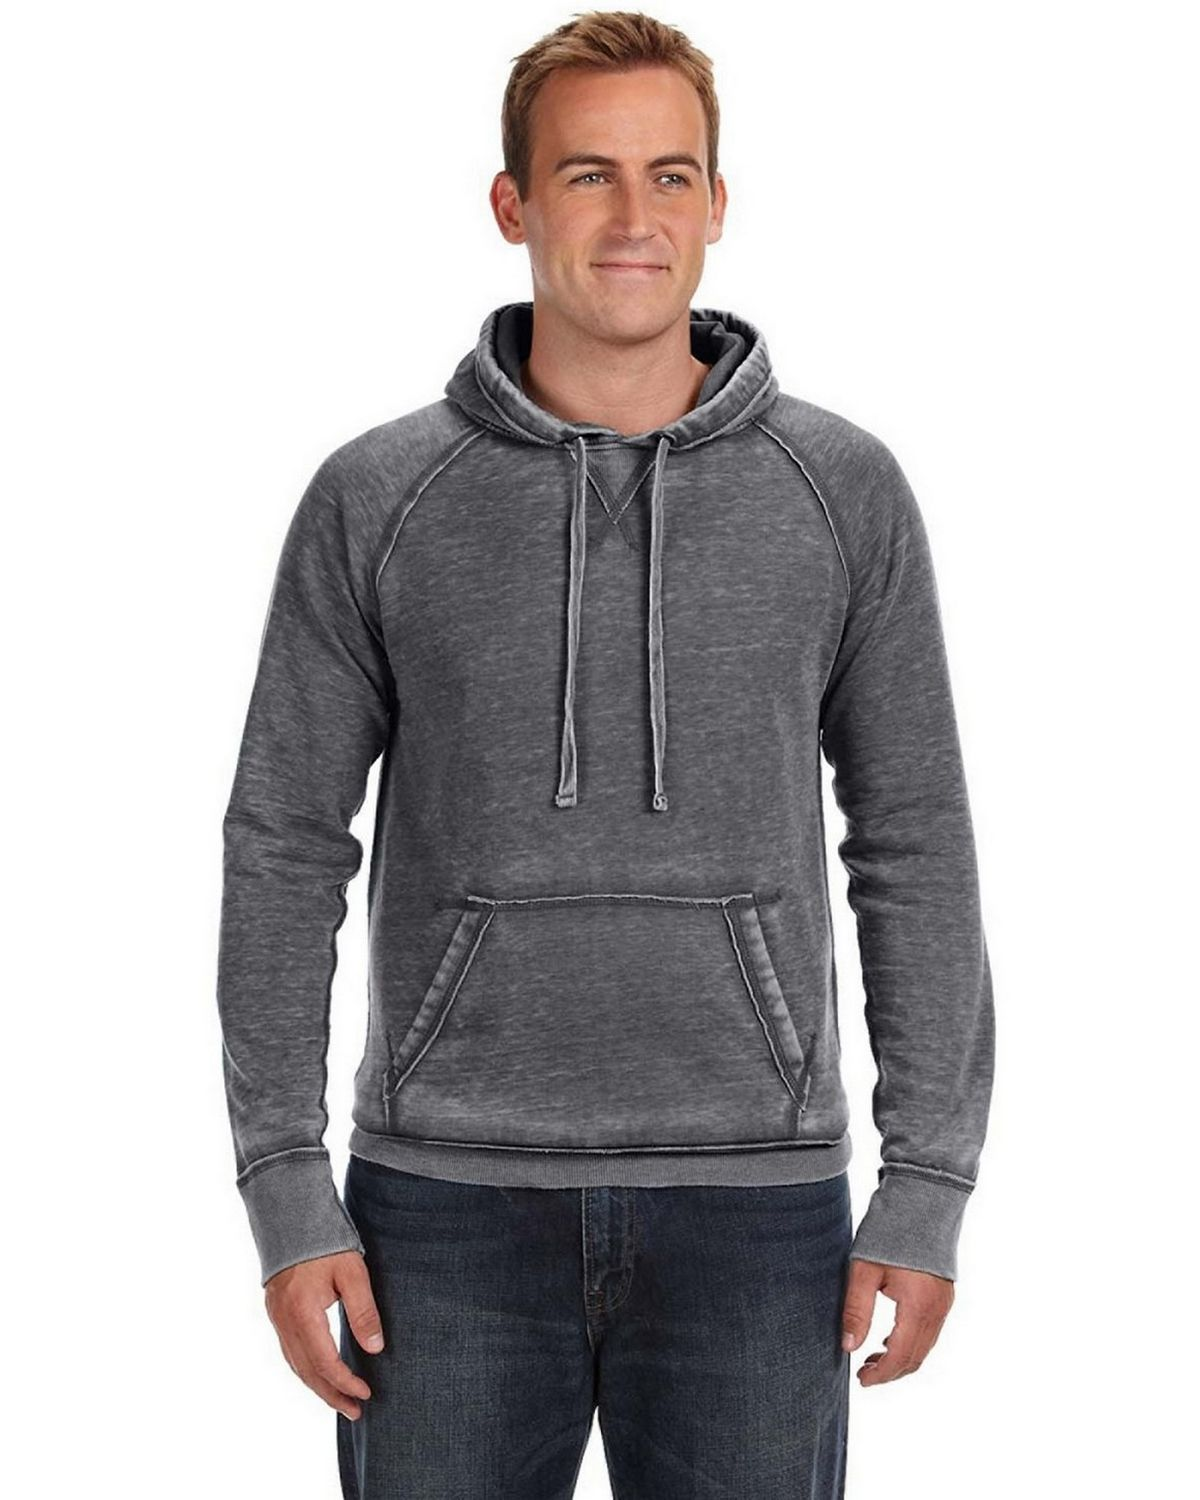 J America J8915 JA Burnout Hooded Sweatshirt - Dark Smoke - XL J8915